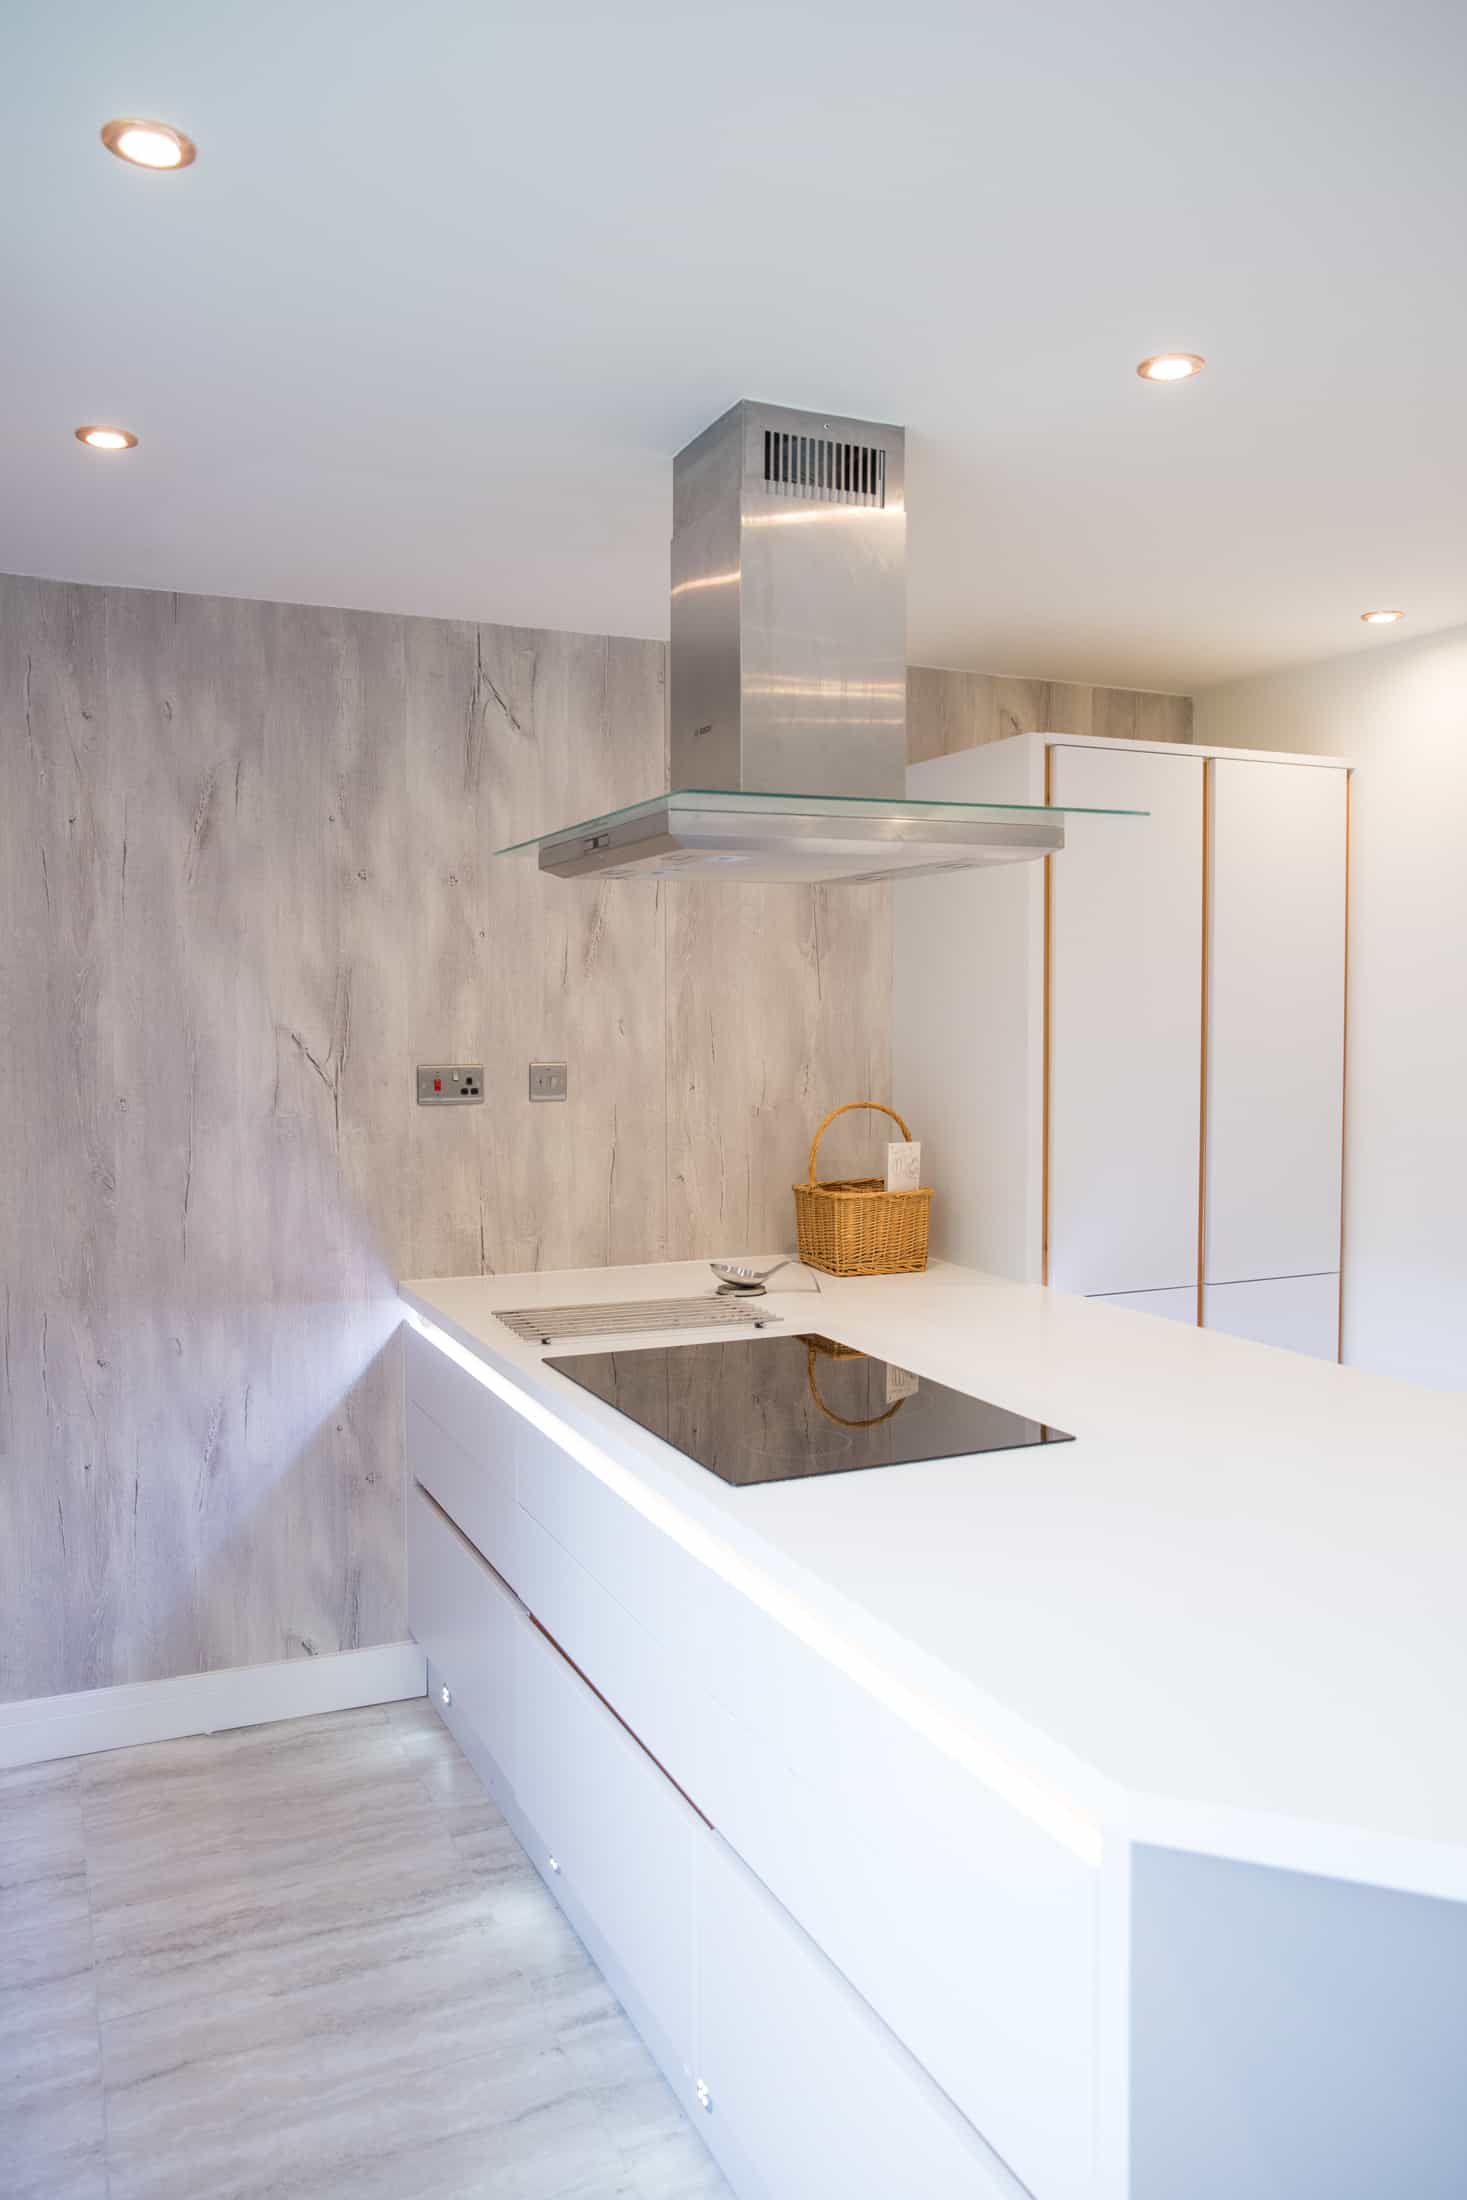 A renovated kitchen made by renovation services contractor FIX LTD